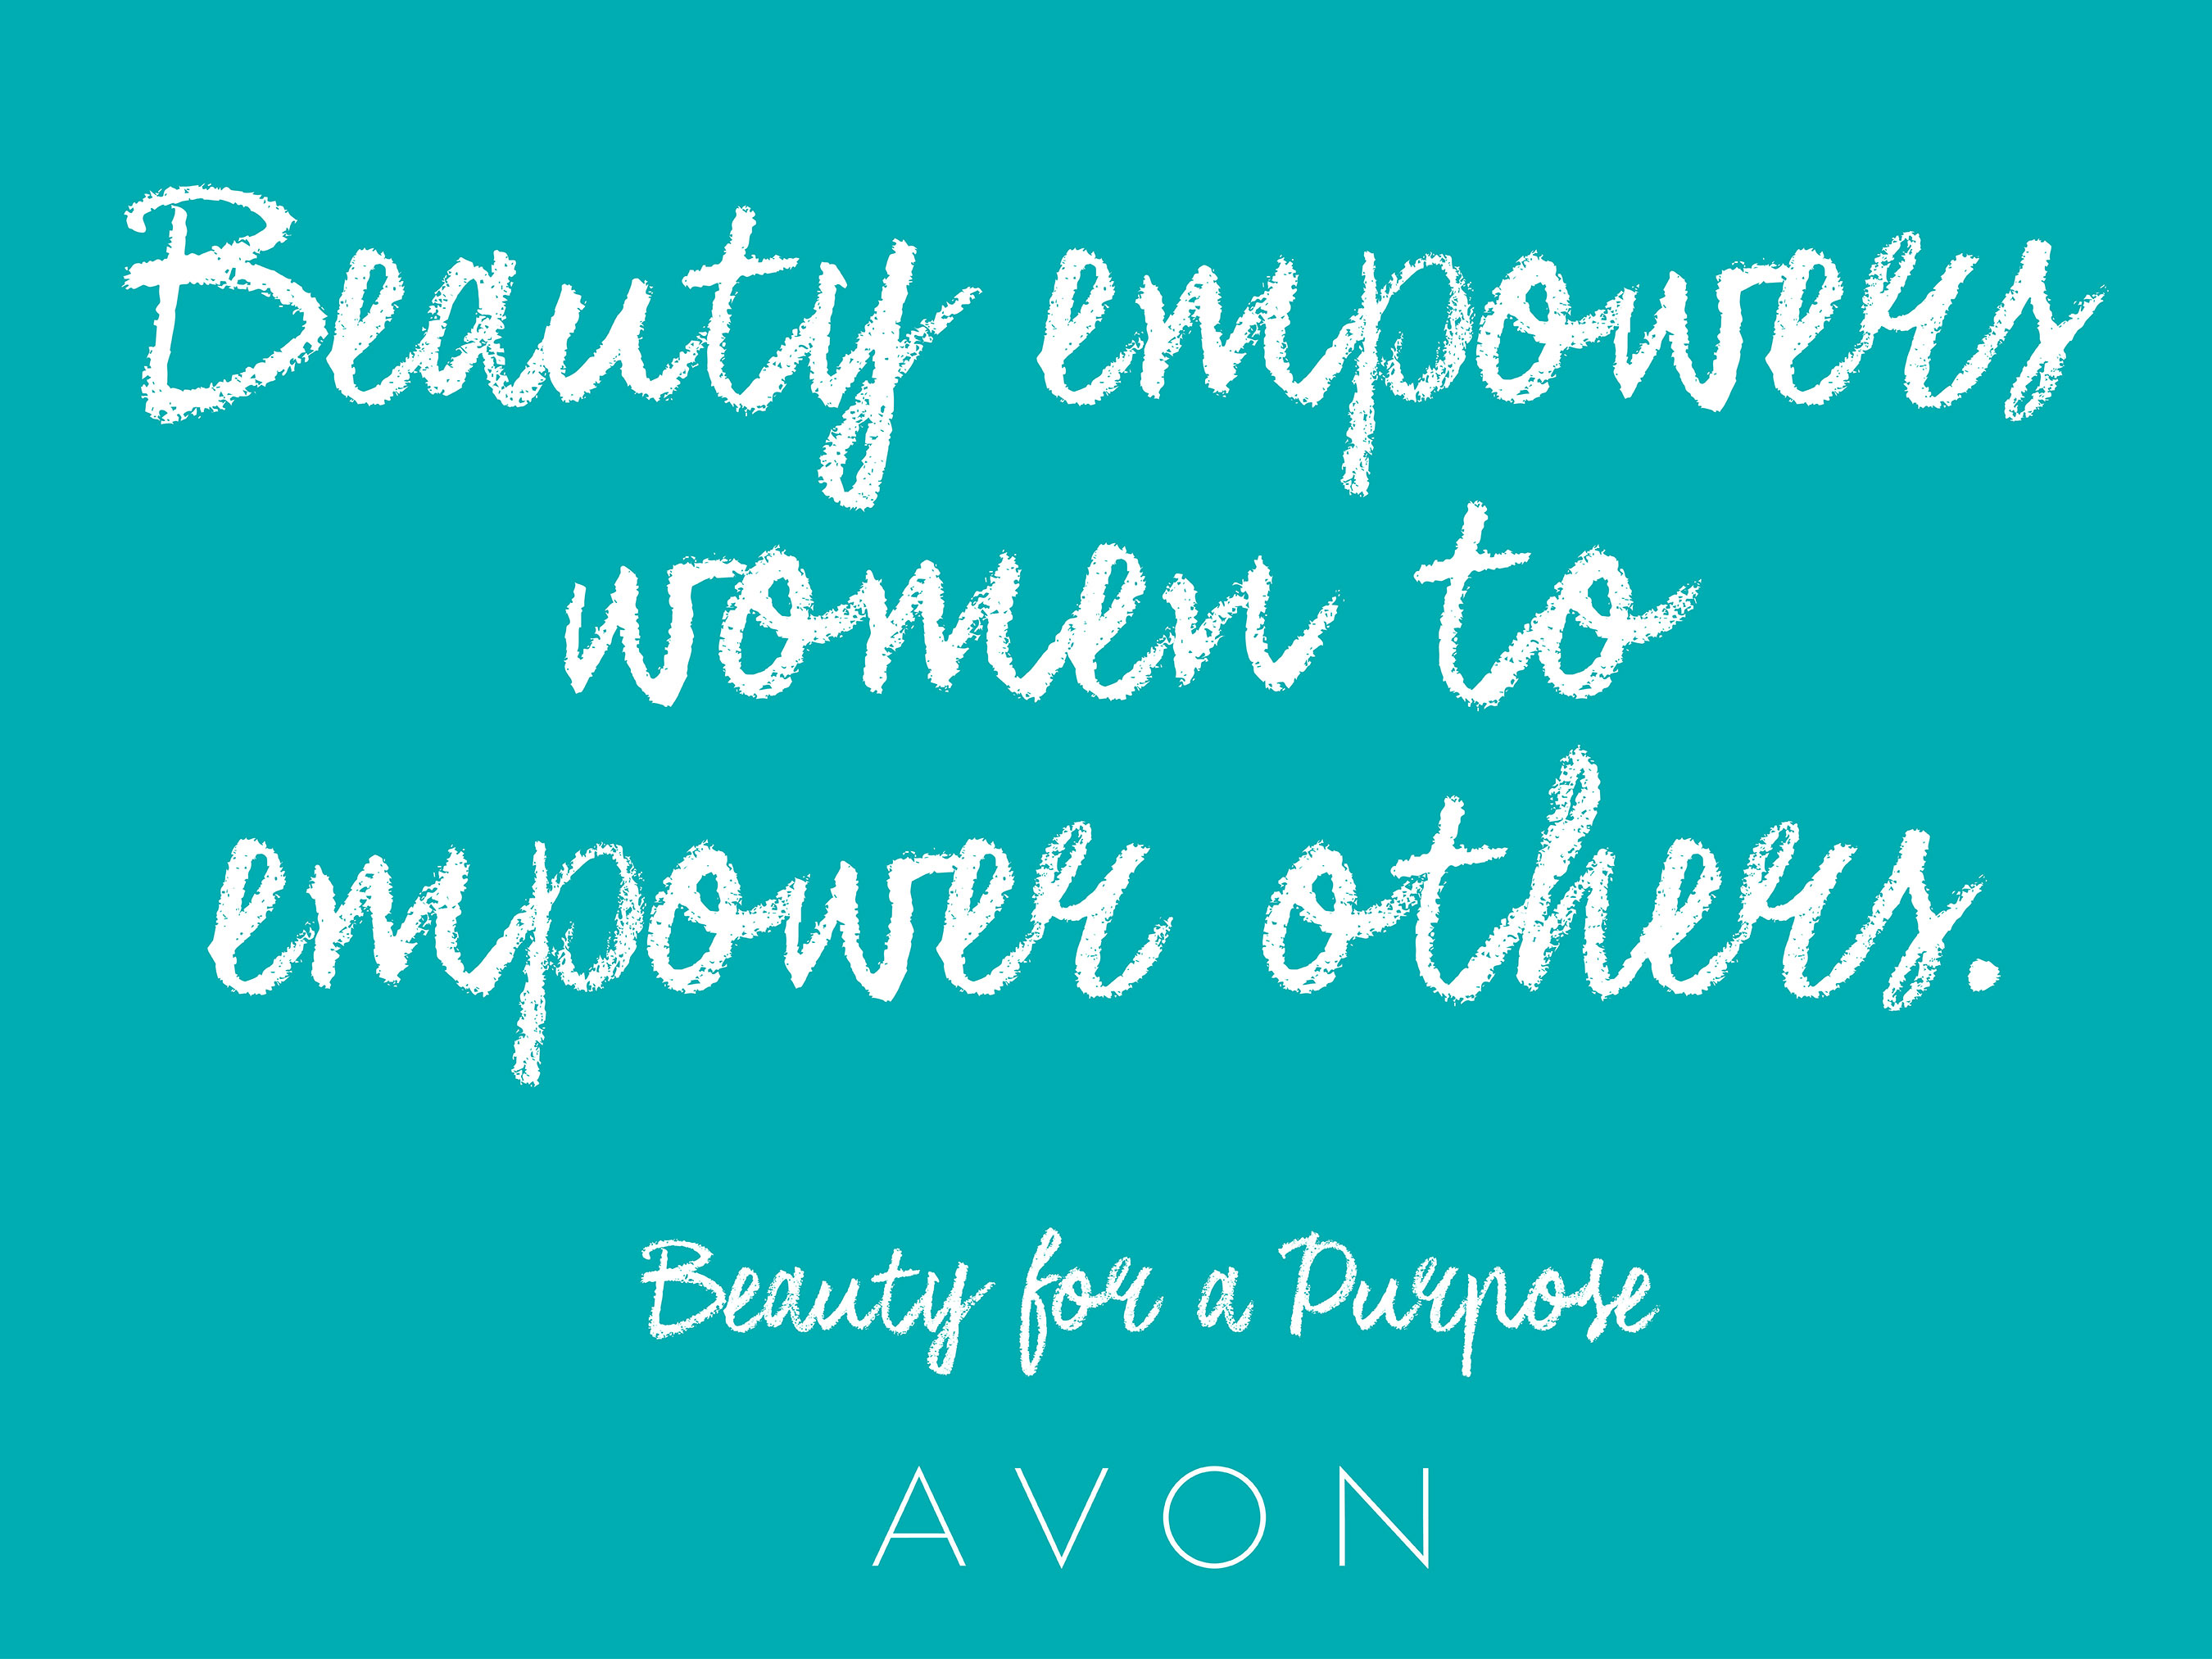 Avon Announces Beauty For A Purpose New Brand Statement Reflecting